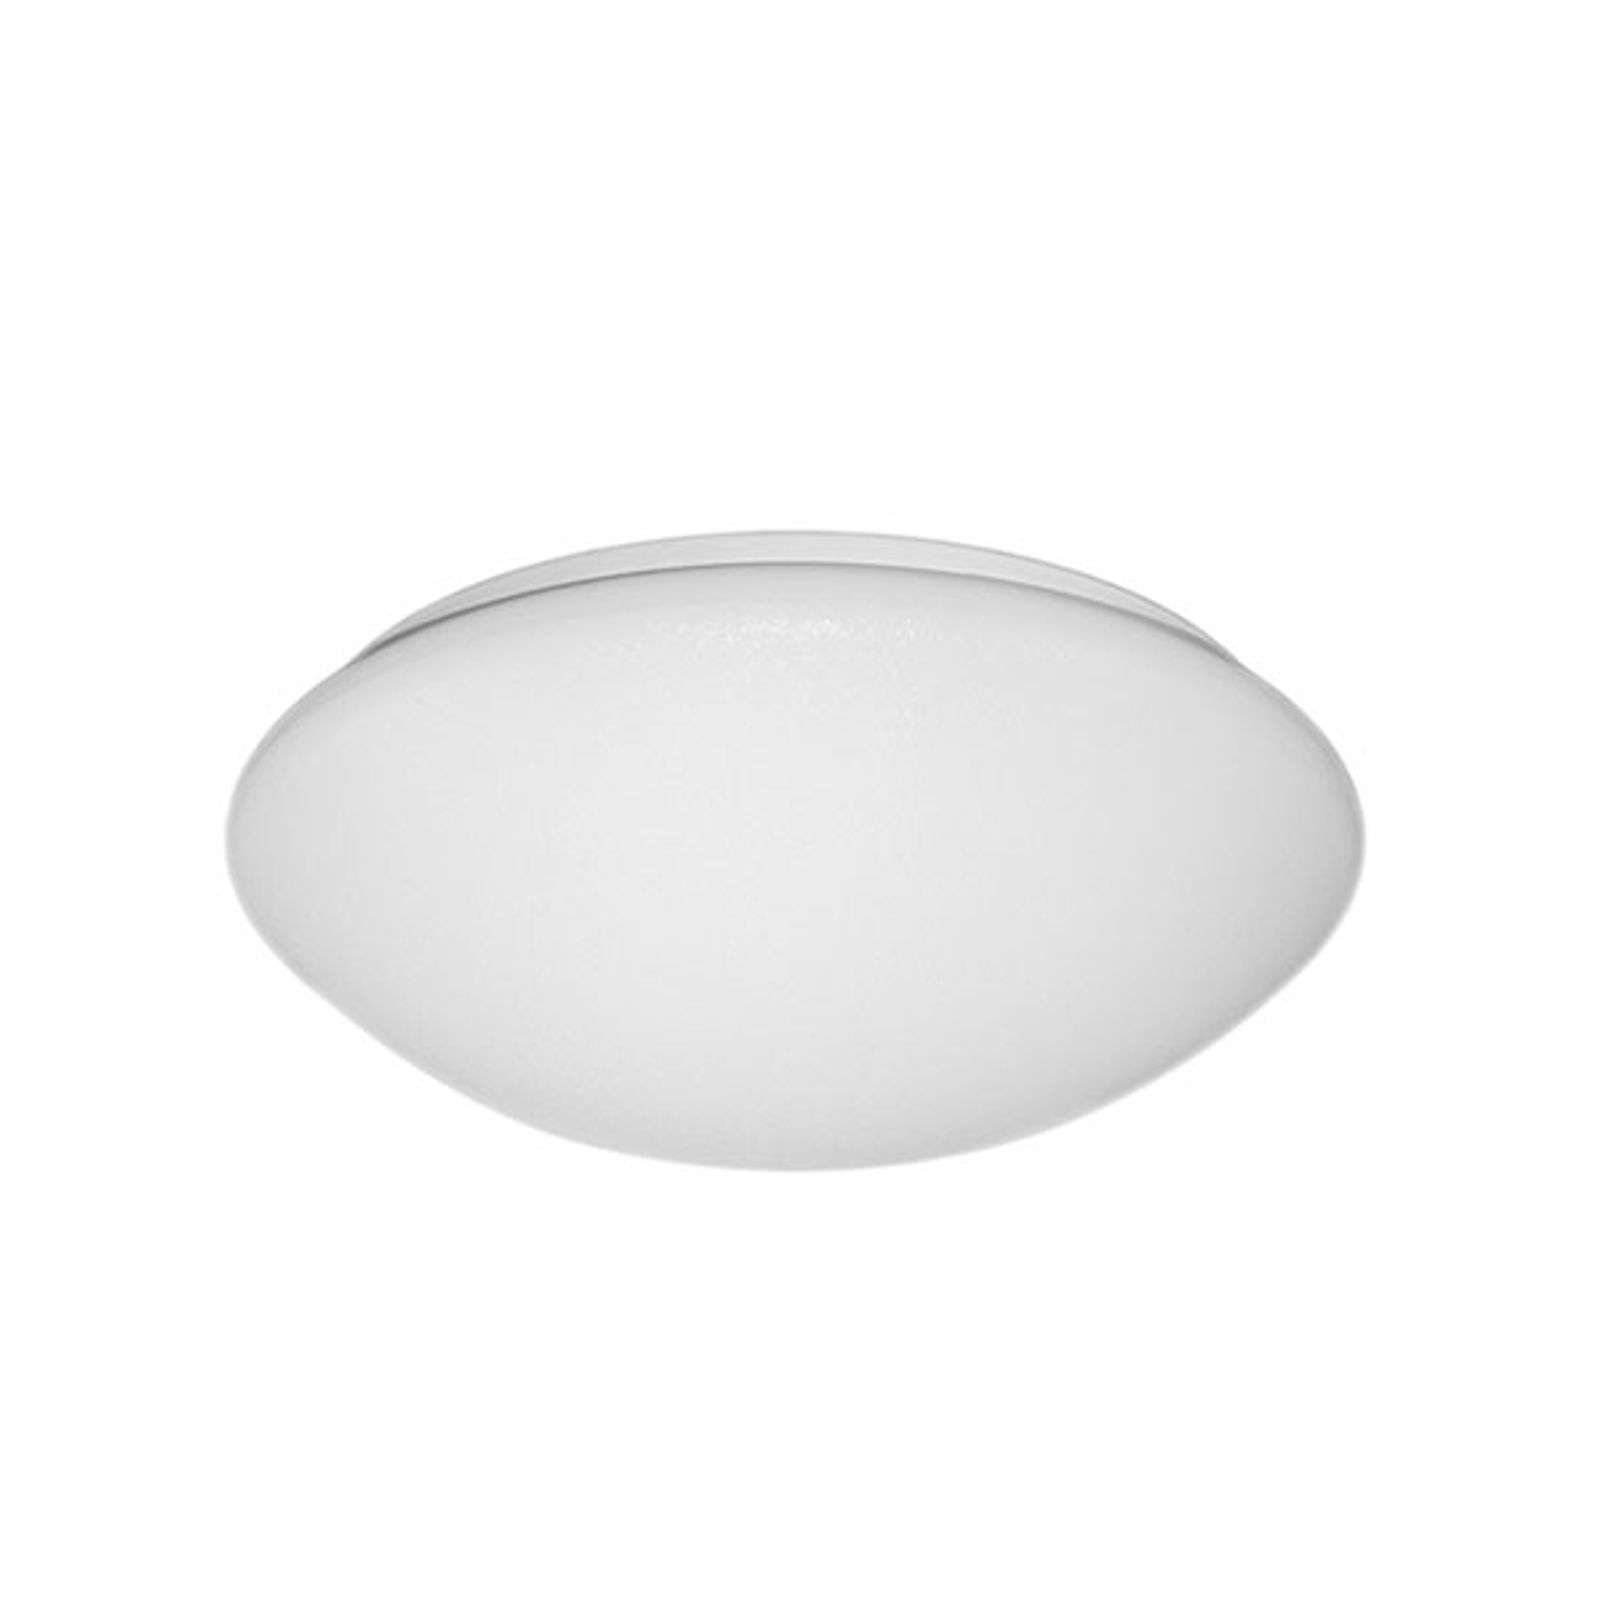 Applique LED ronde, résiliente, 14 W 4 000 K